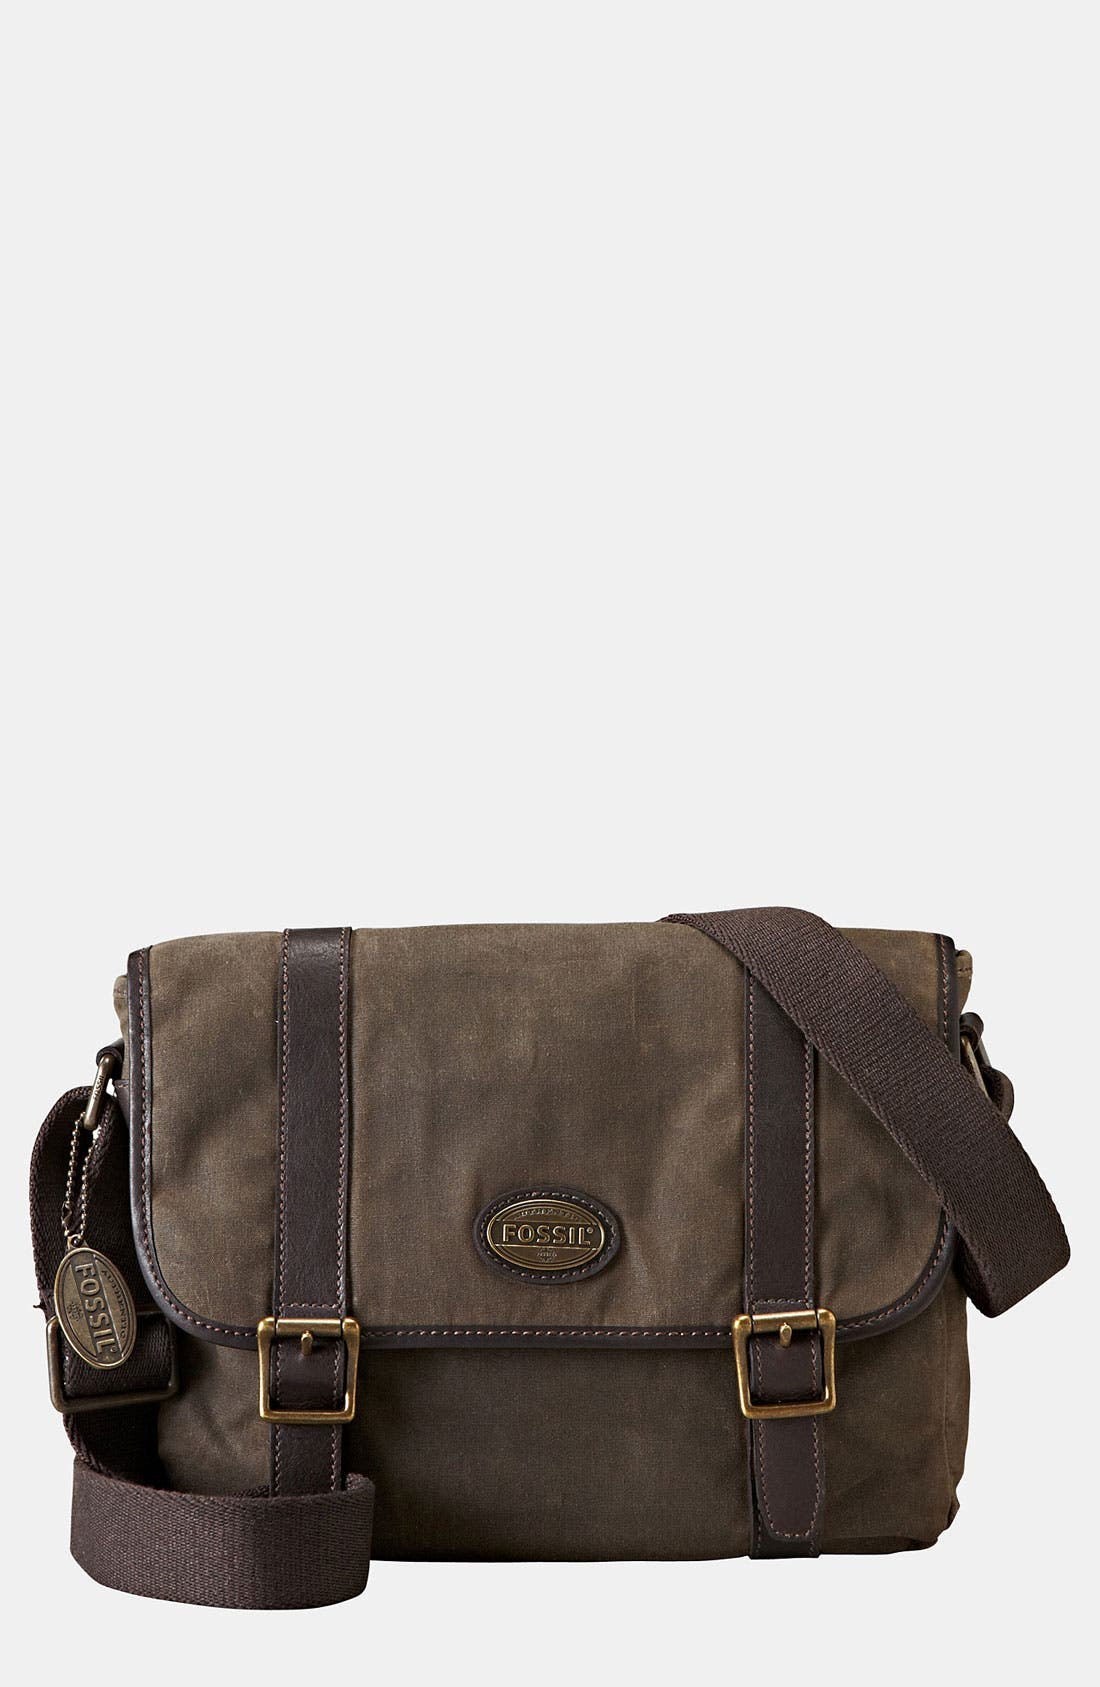 Main Image - Fossil 'Estate' City Bag